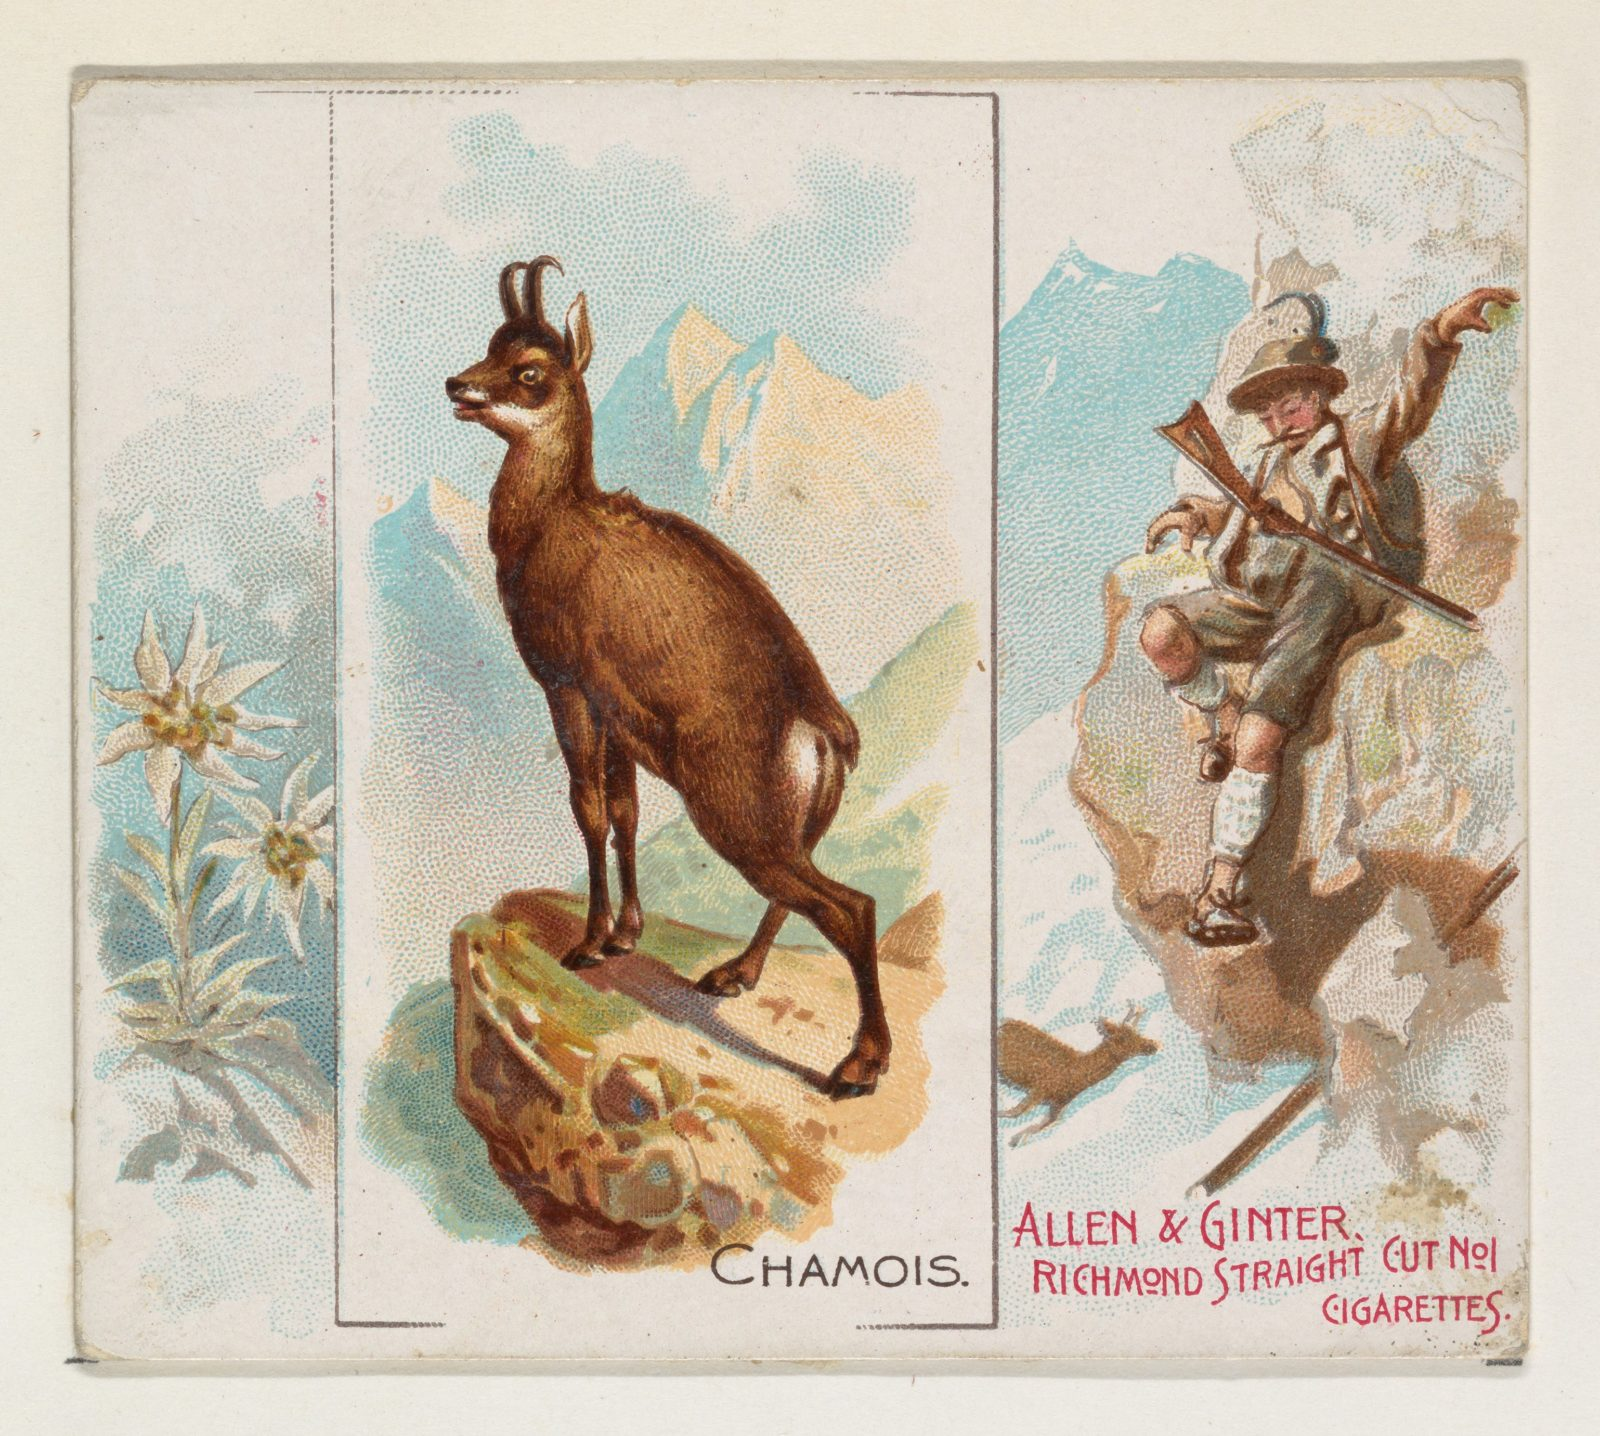 Chamois, from Quadrupeds series (N41) for Allen & Ginter Cigarettes